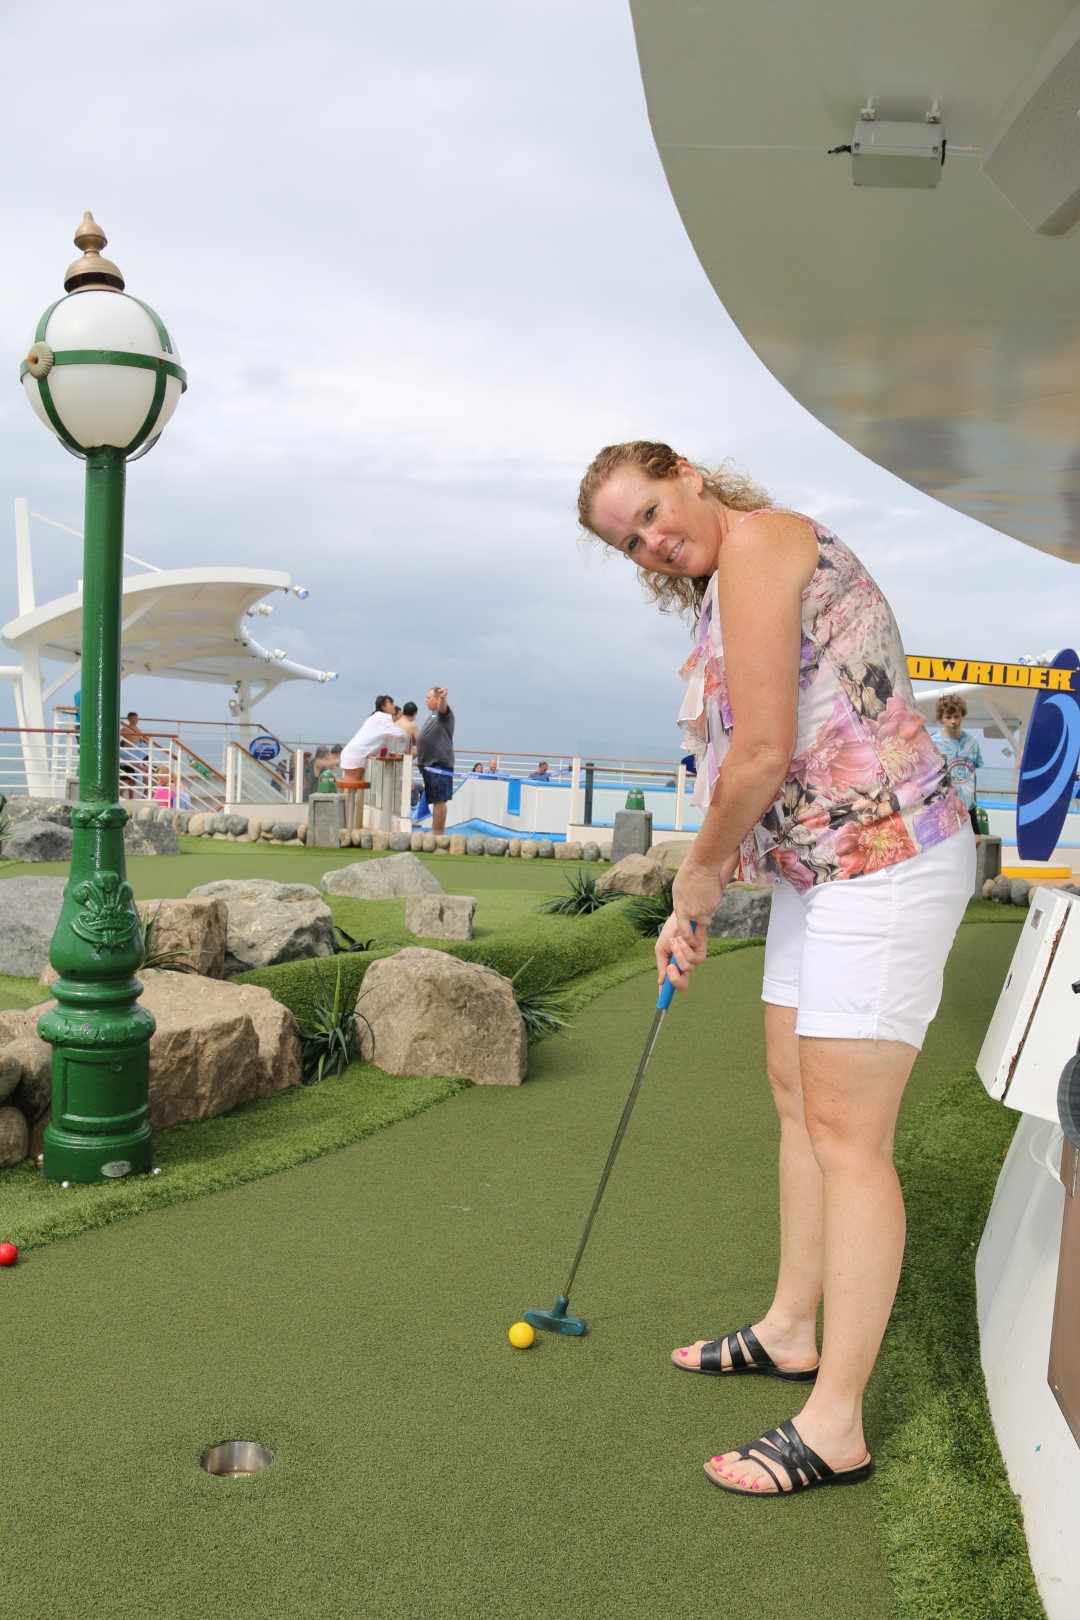 Mini Golf? On a Ship??